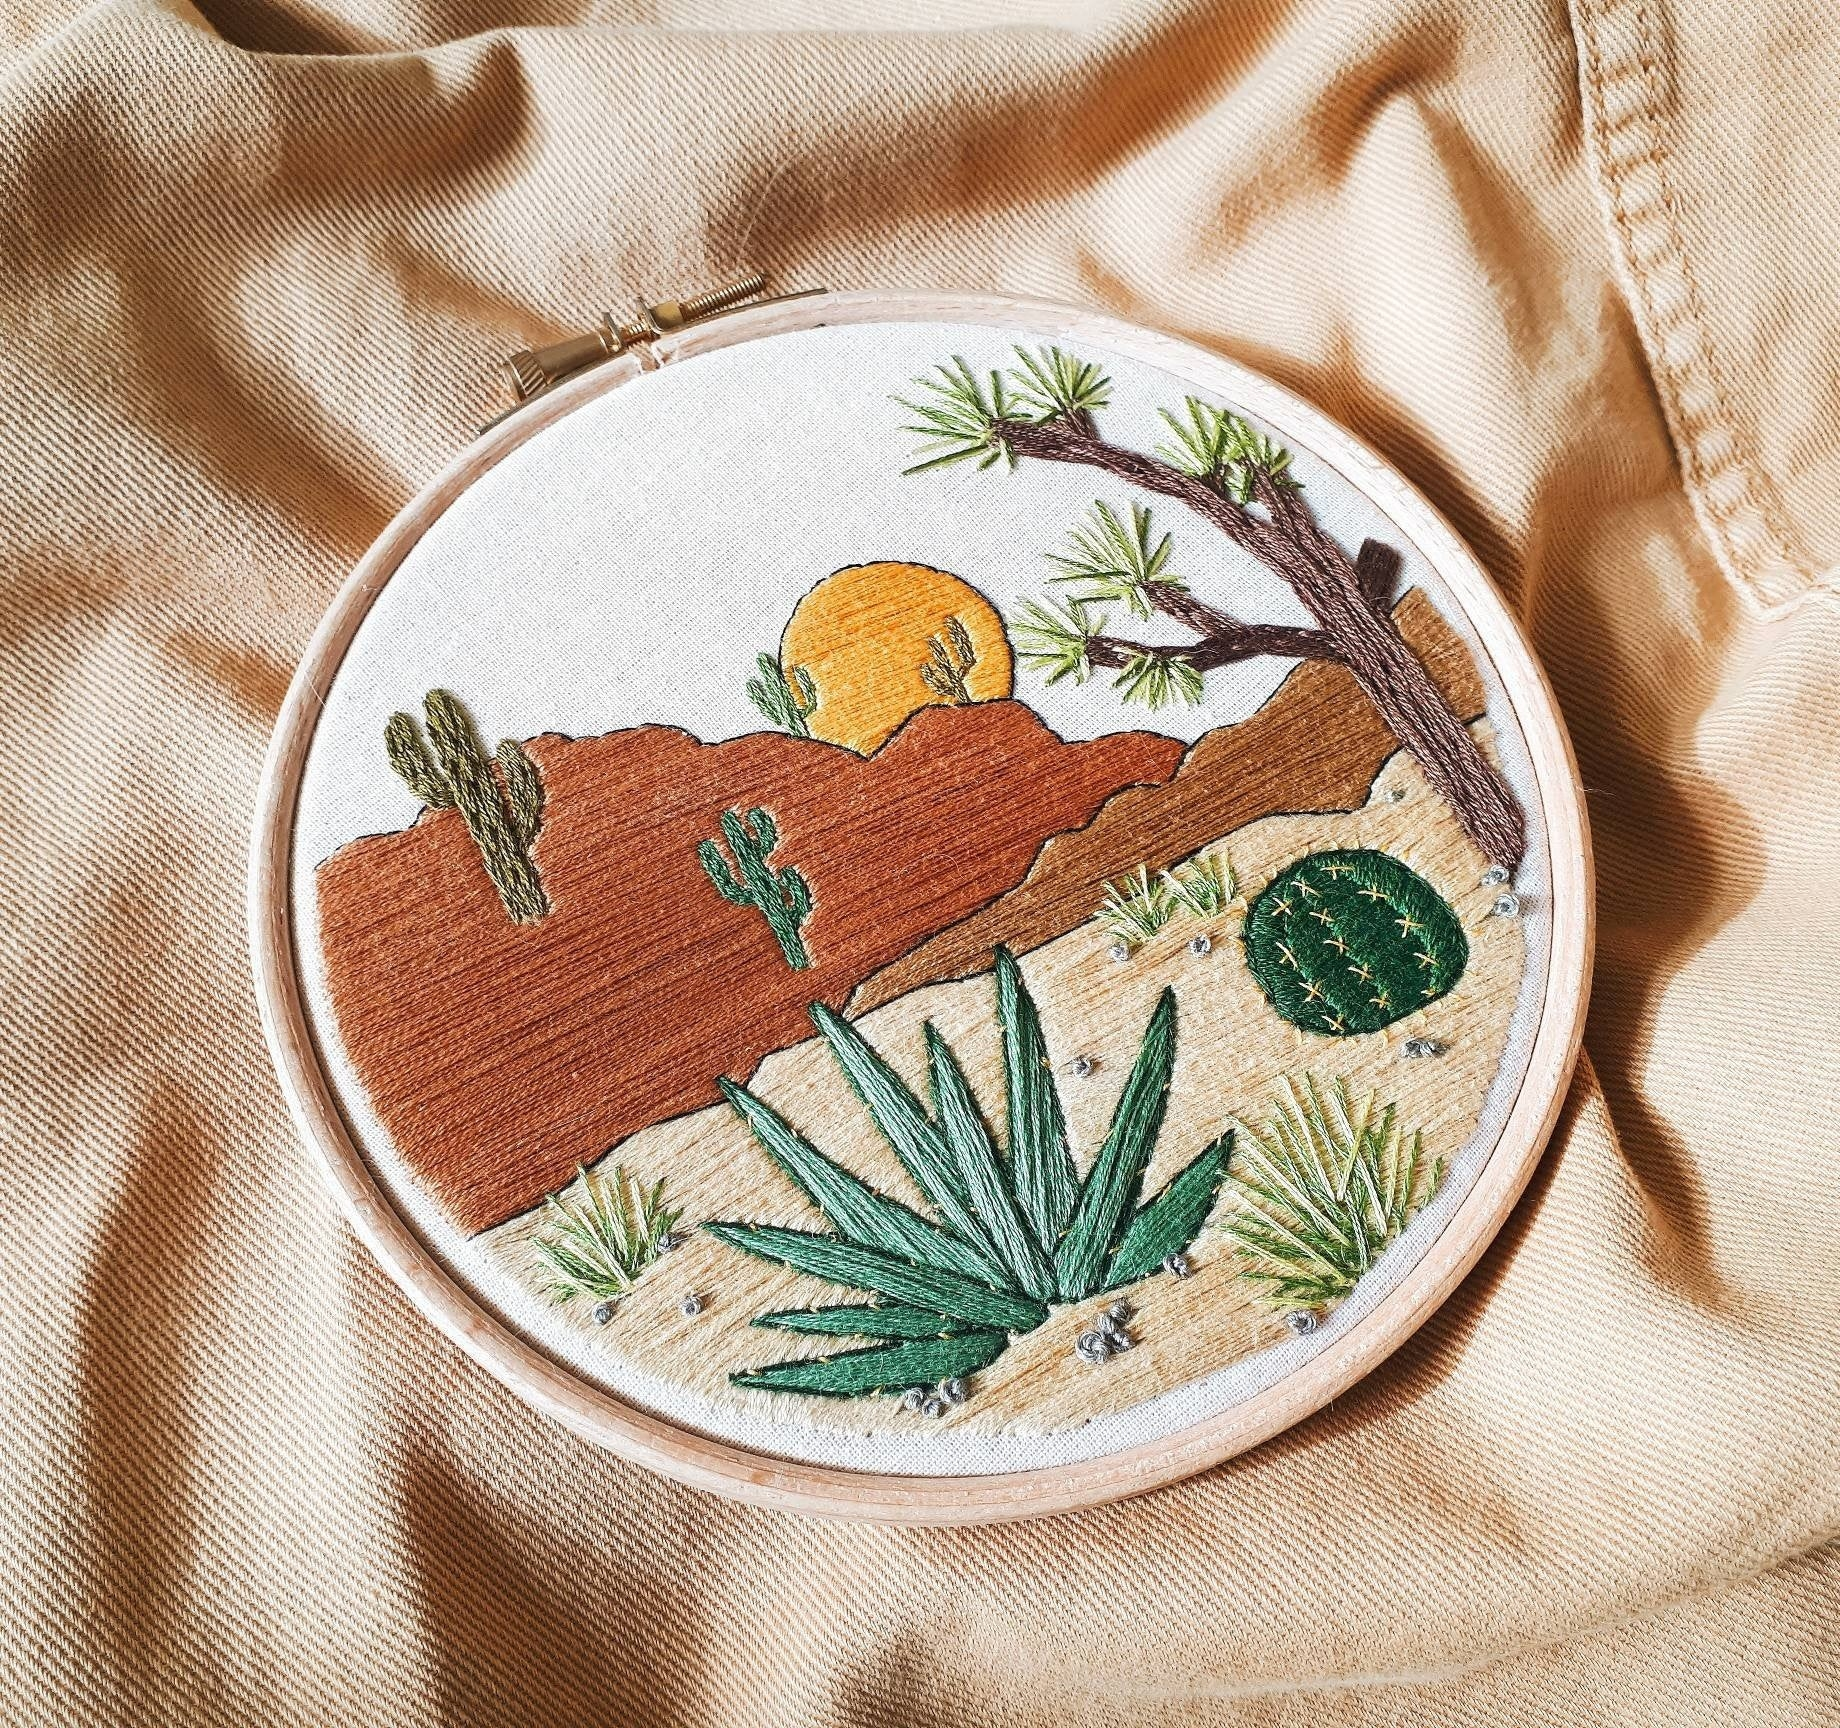 Desert scene with cacti, mountains, and a setting sun